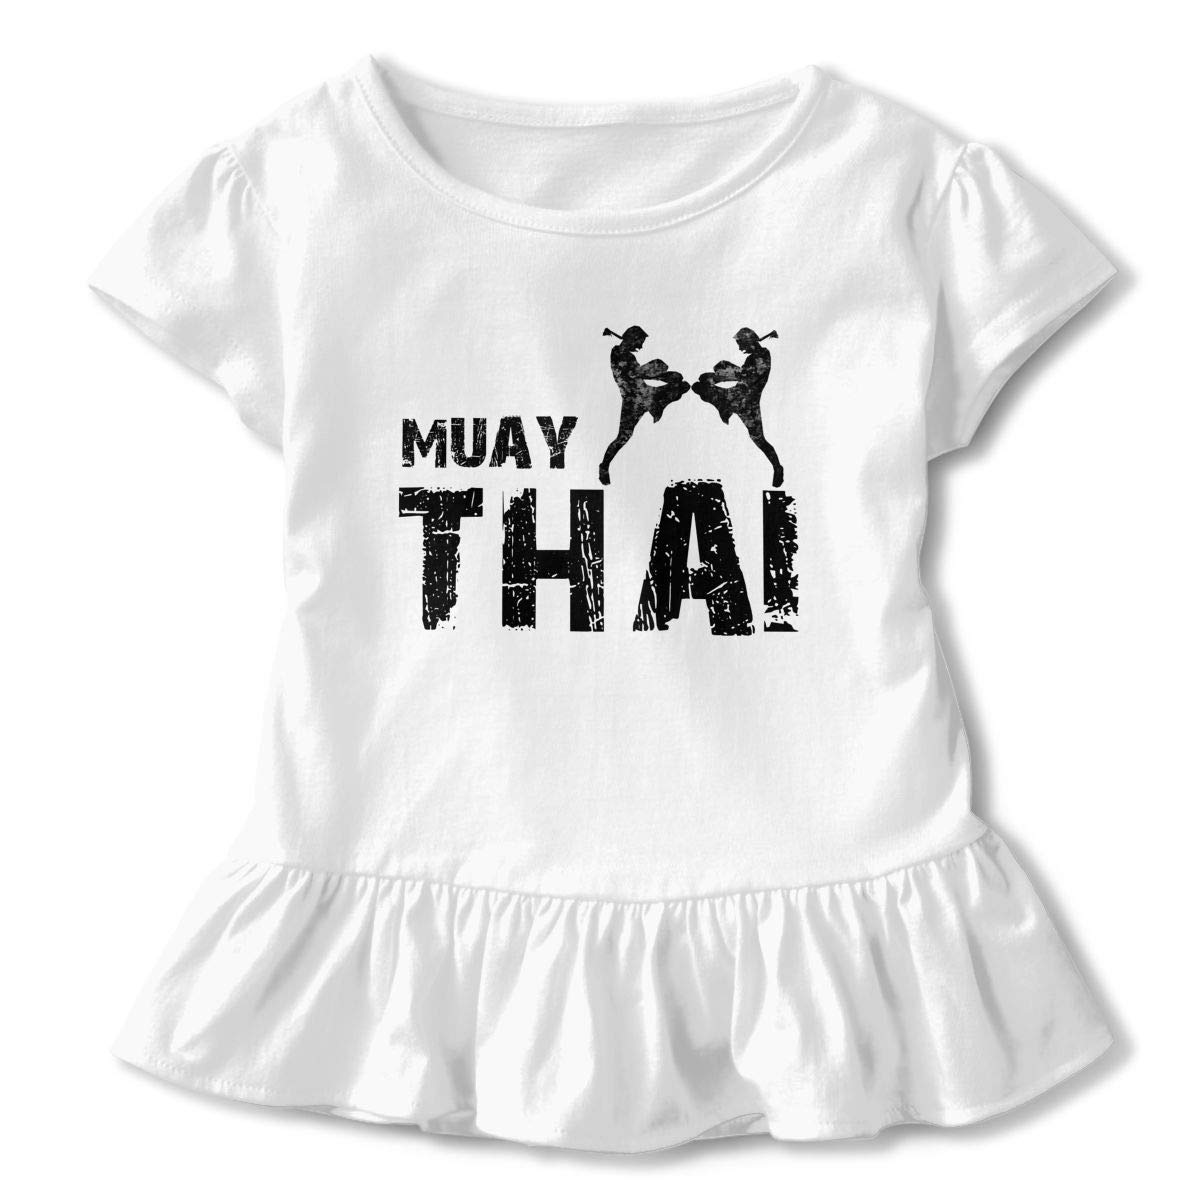 Baby Girls Kids Muay Thai Cotton Short Sleeve Tee Tops Size 2-6